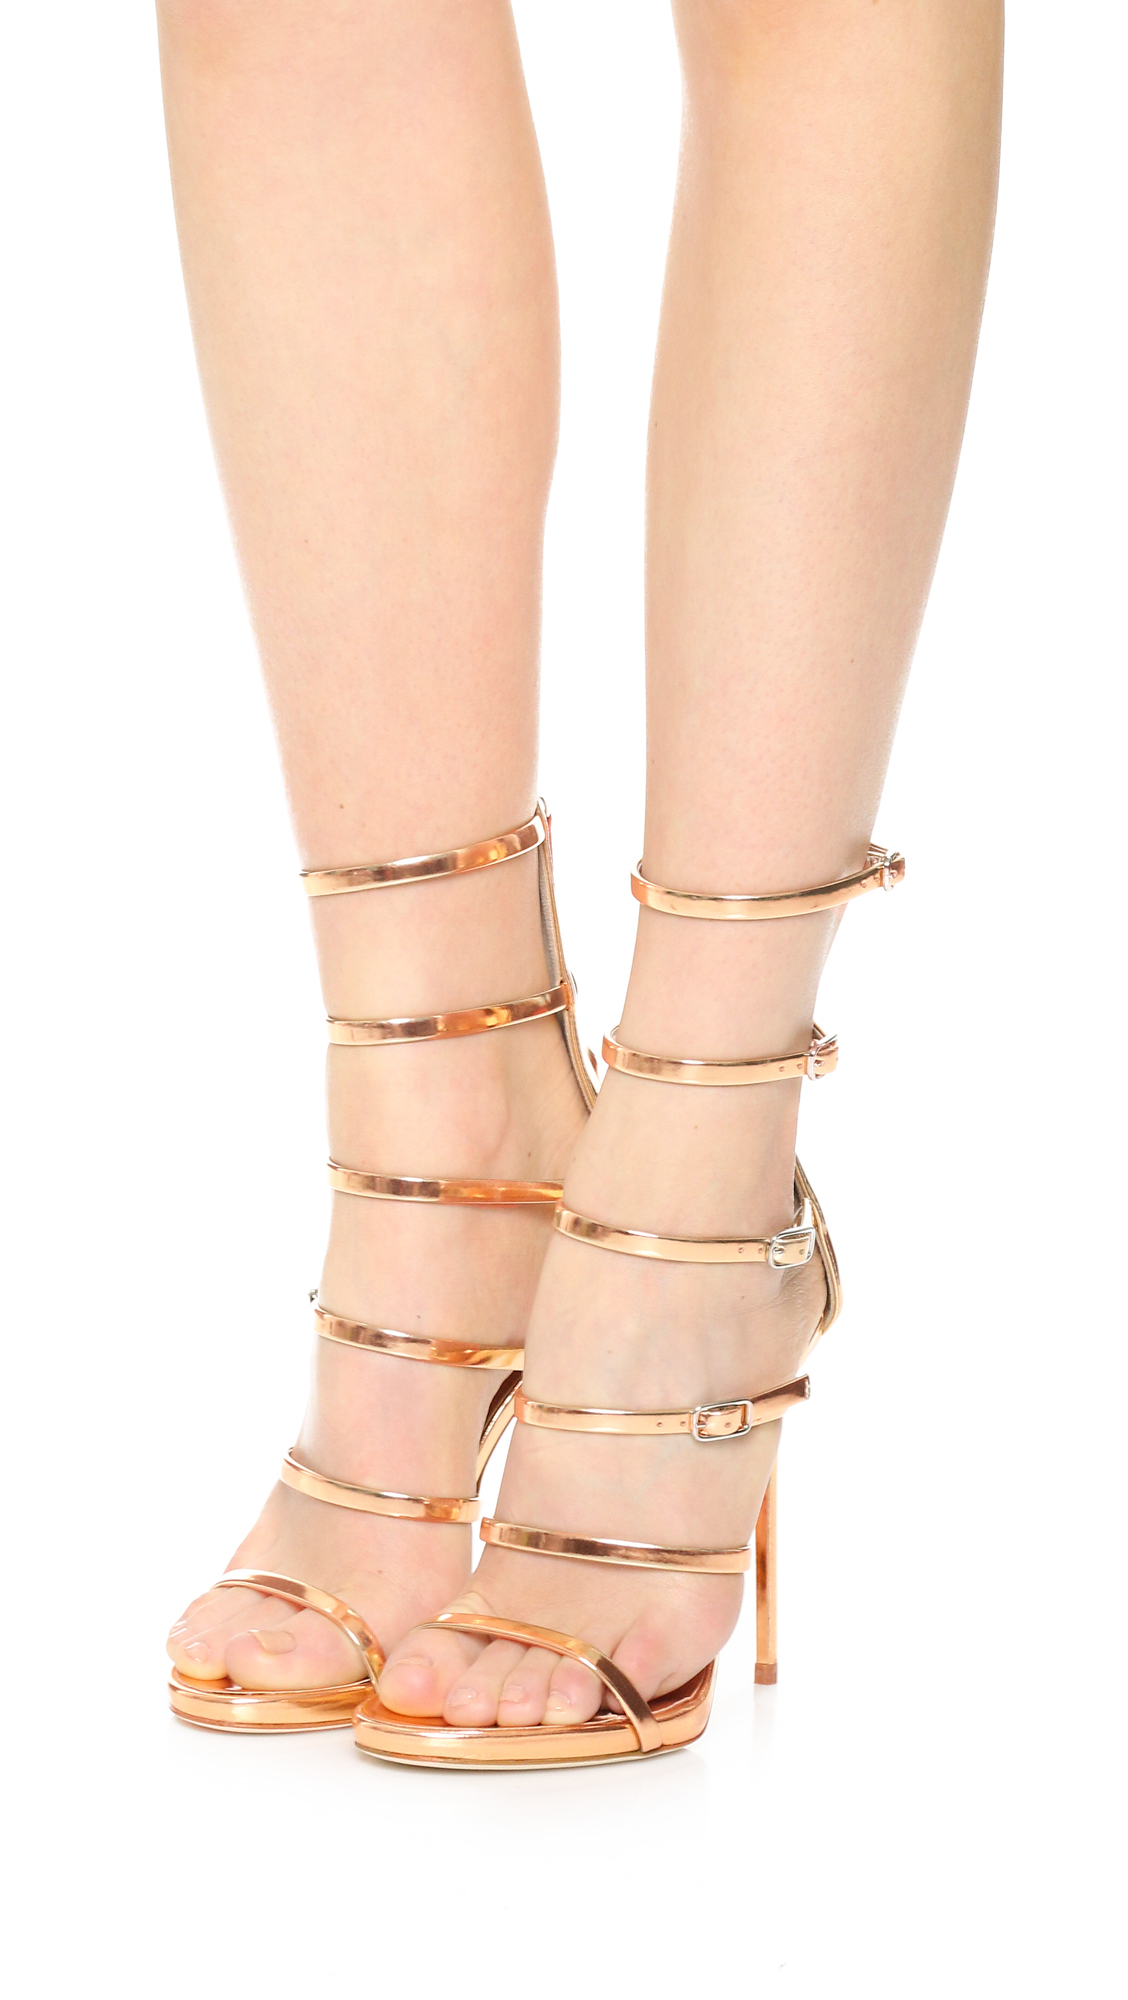 Giuseppe Zanotti Strappy Sandals In Pink - Lyst-2555